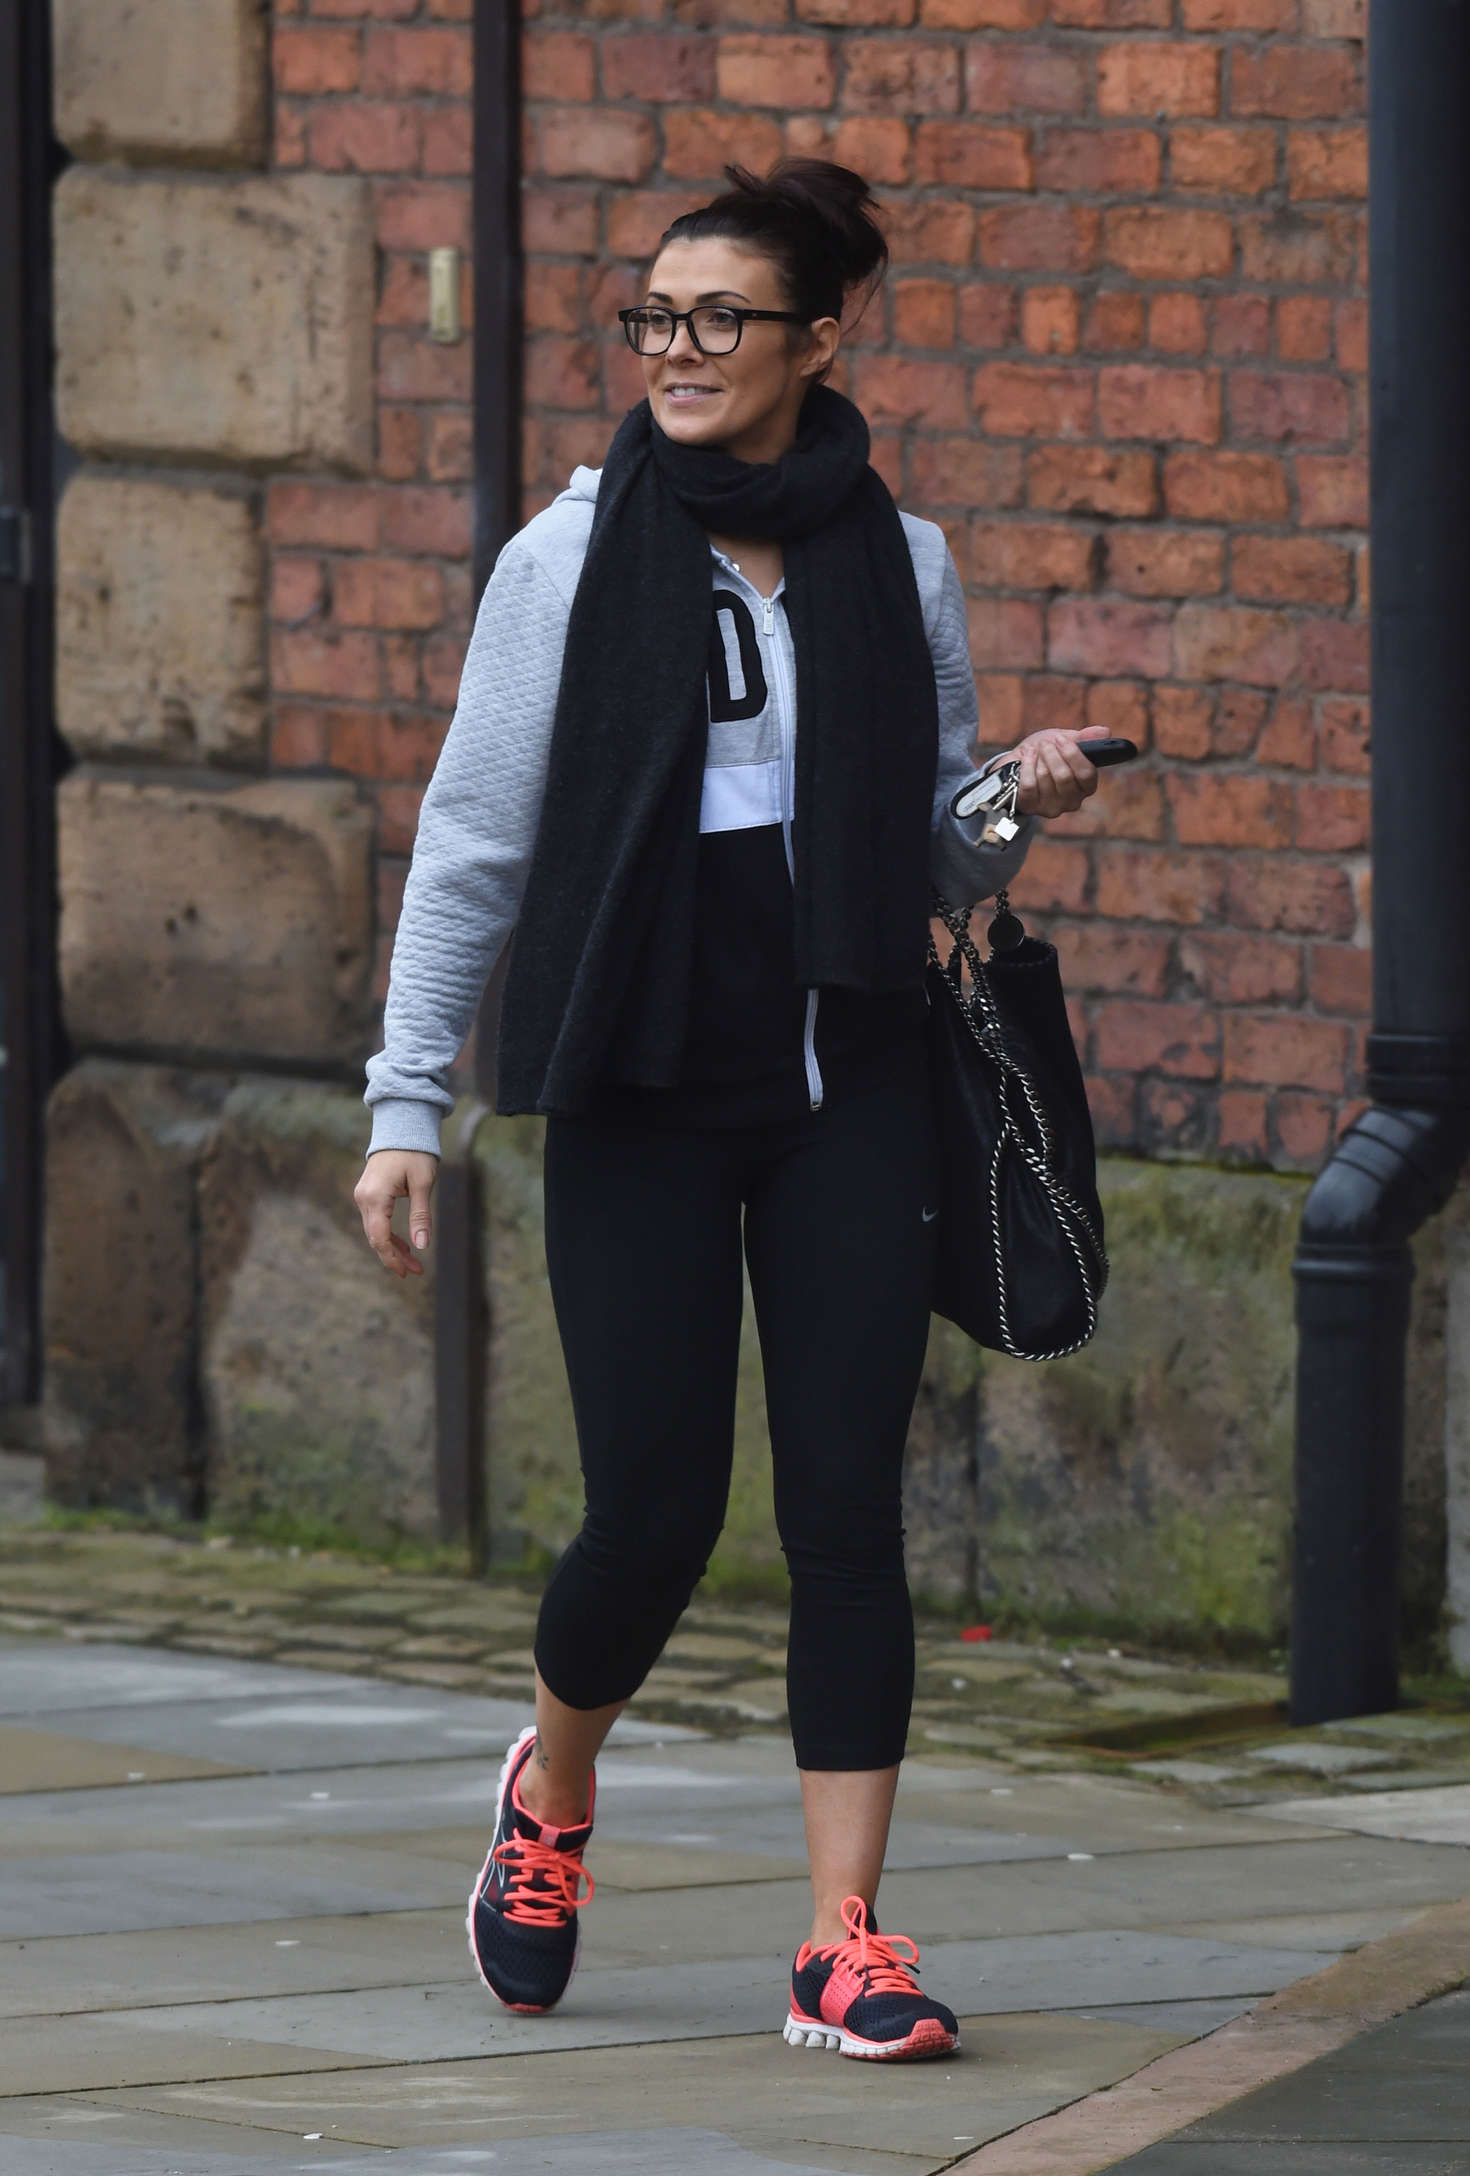 Kym Marsh in Leggings out in Manchester